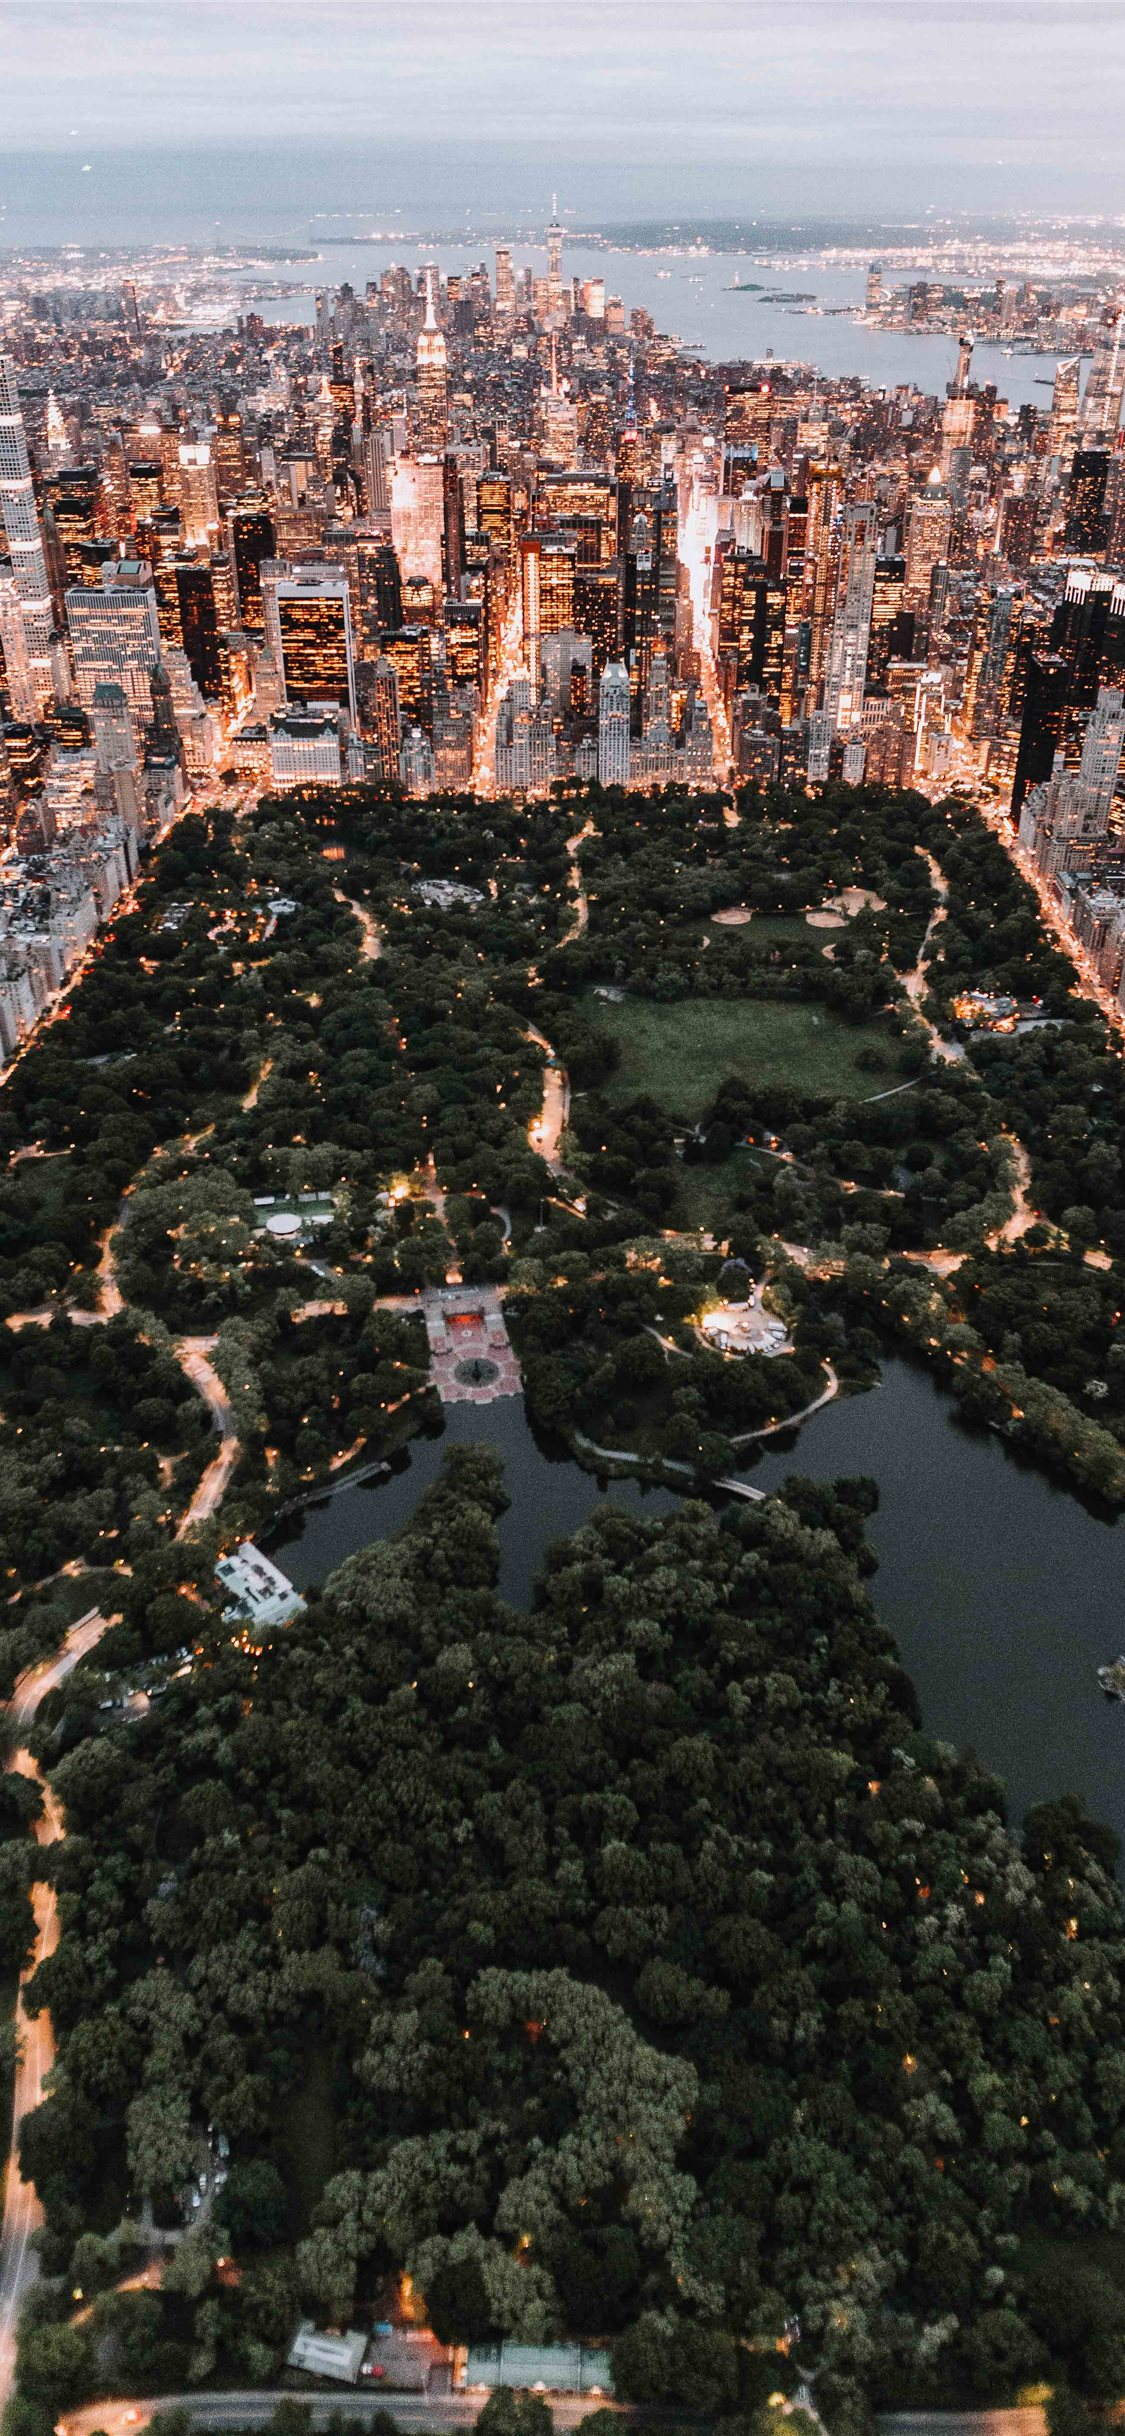 Central Park From Above New York City IPhone X Wallpapers